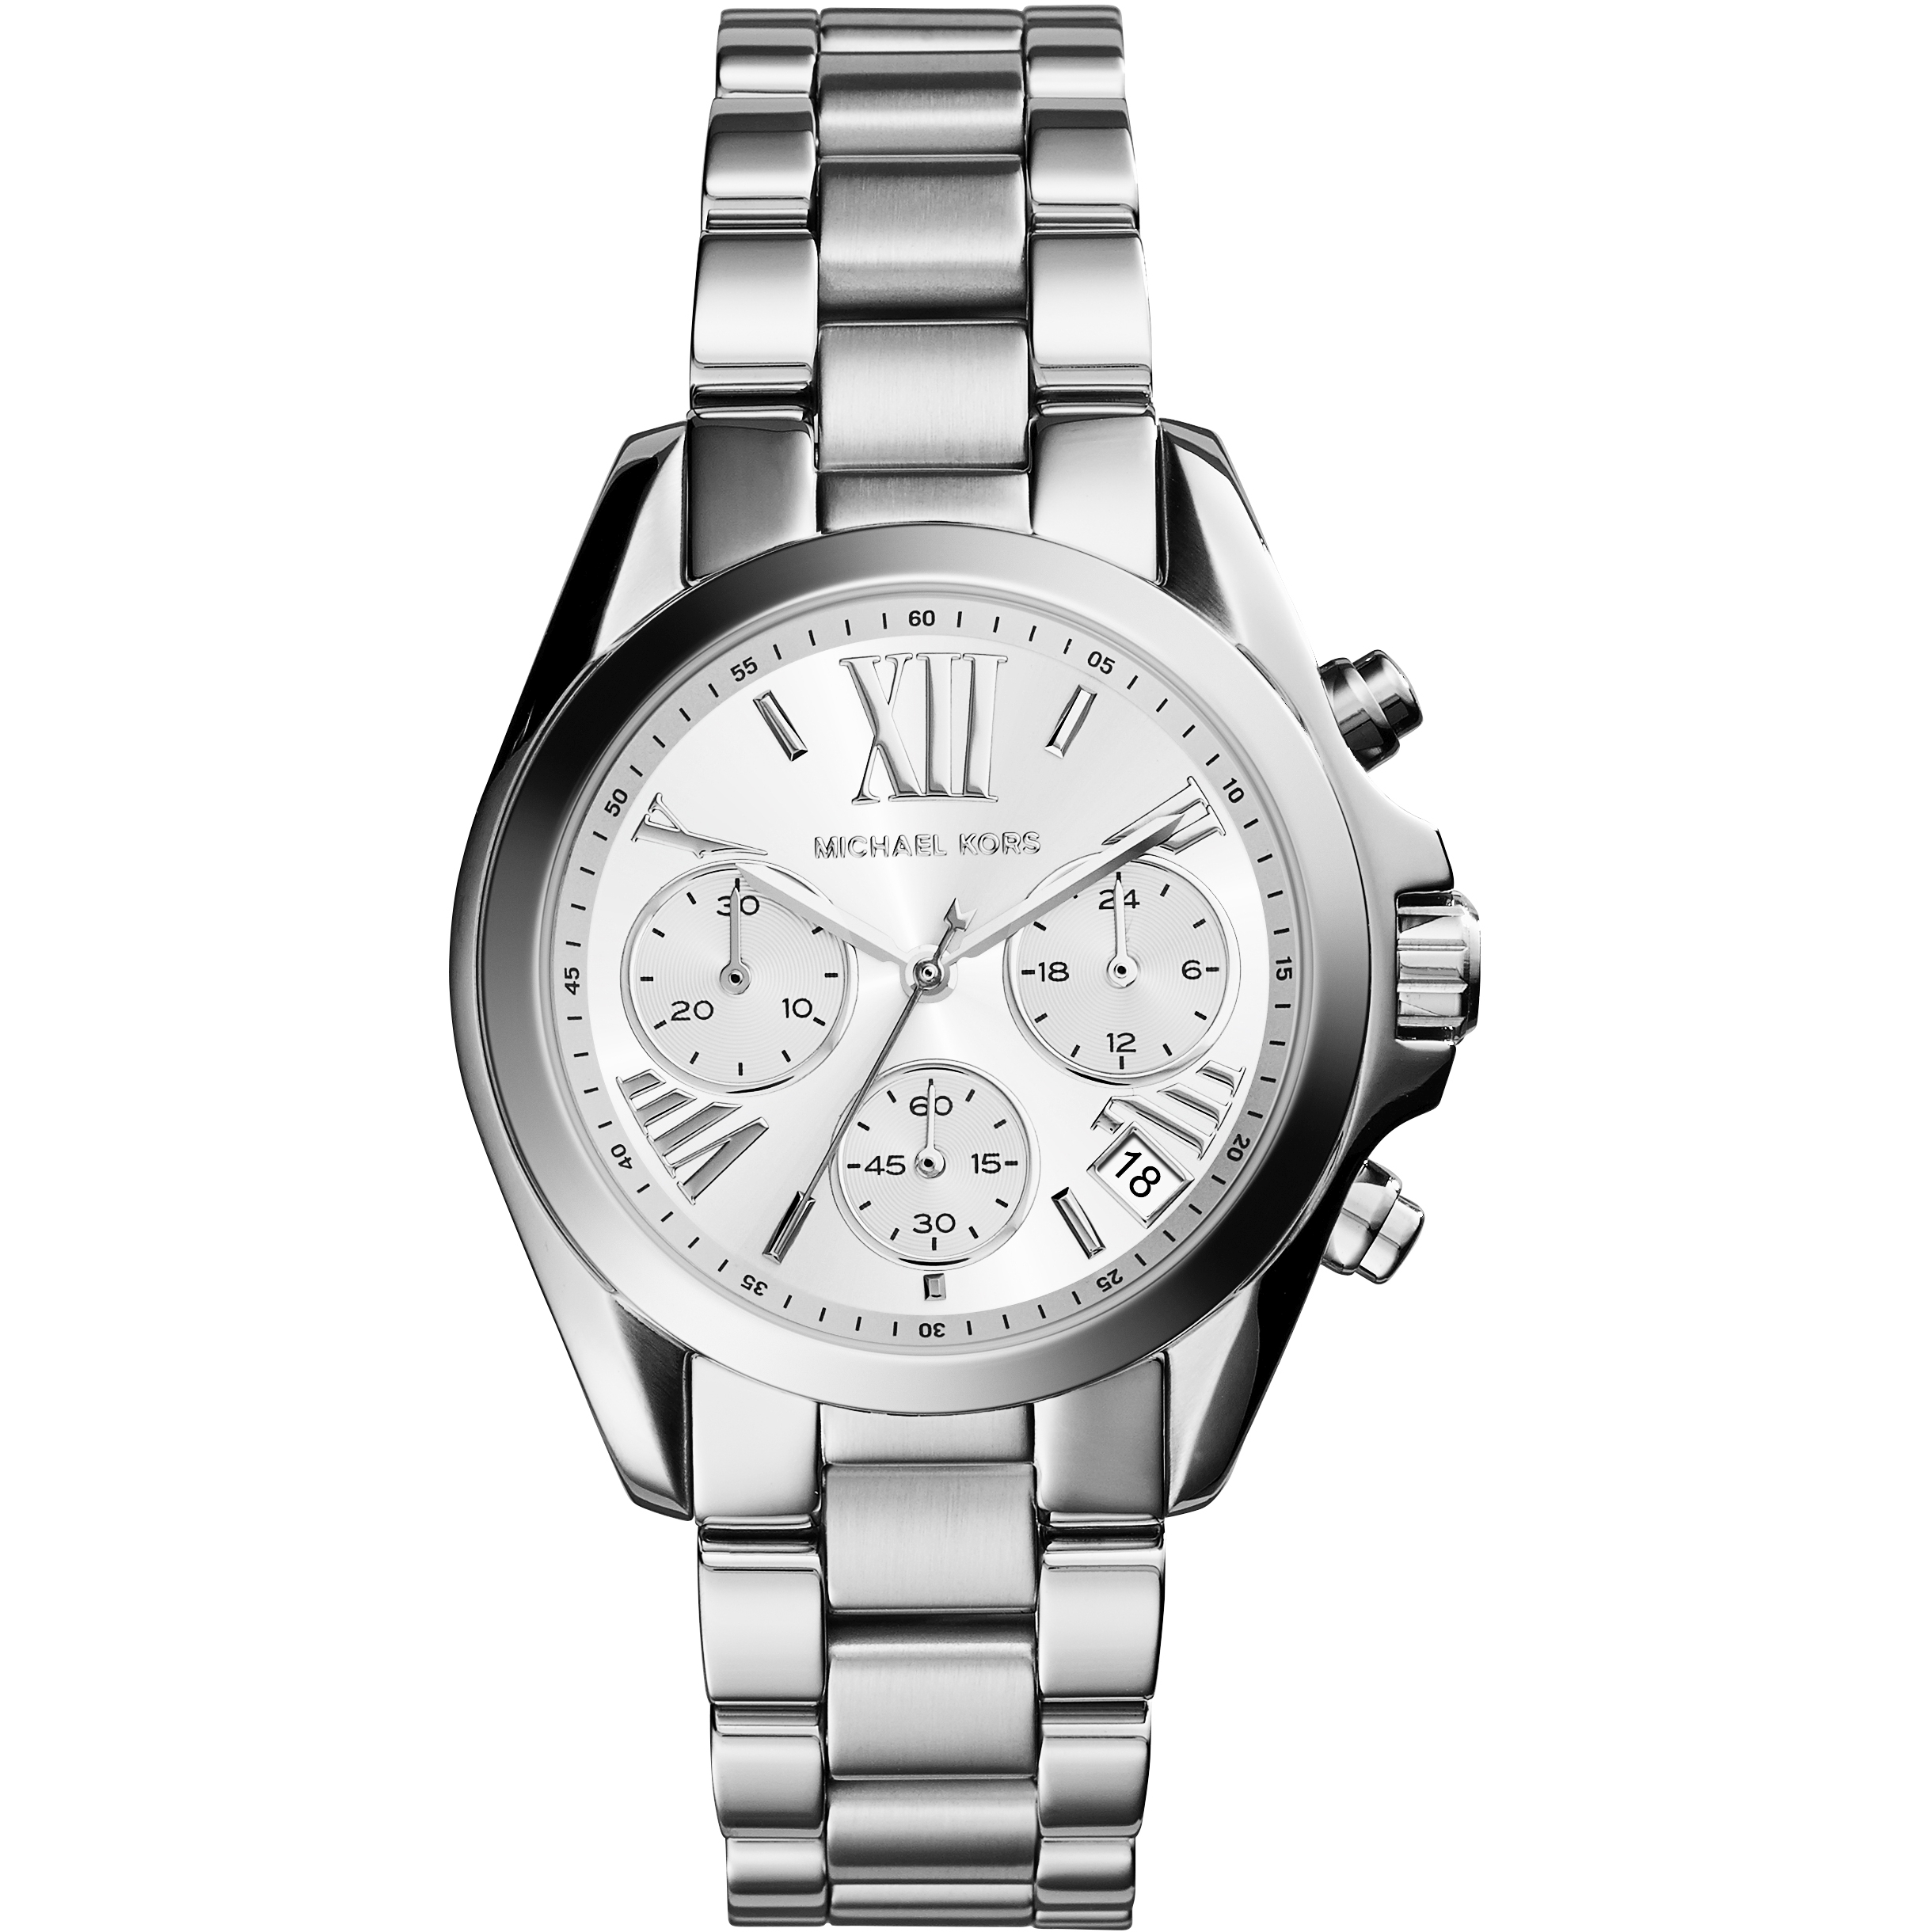 49e967345c30 Ladies Michael Kors Bradshaw Chronograph Watch (MK6174)